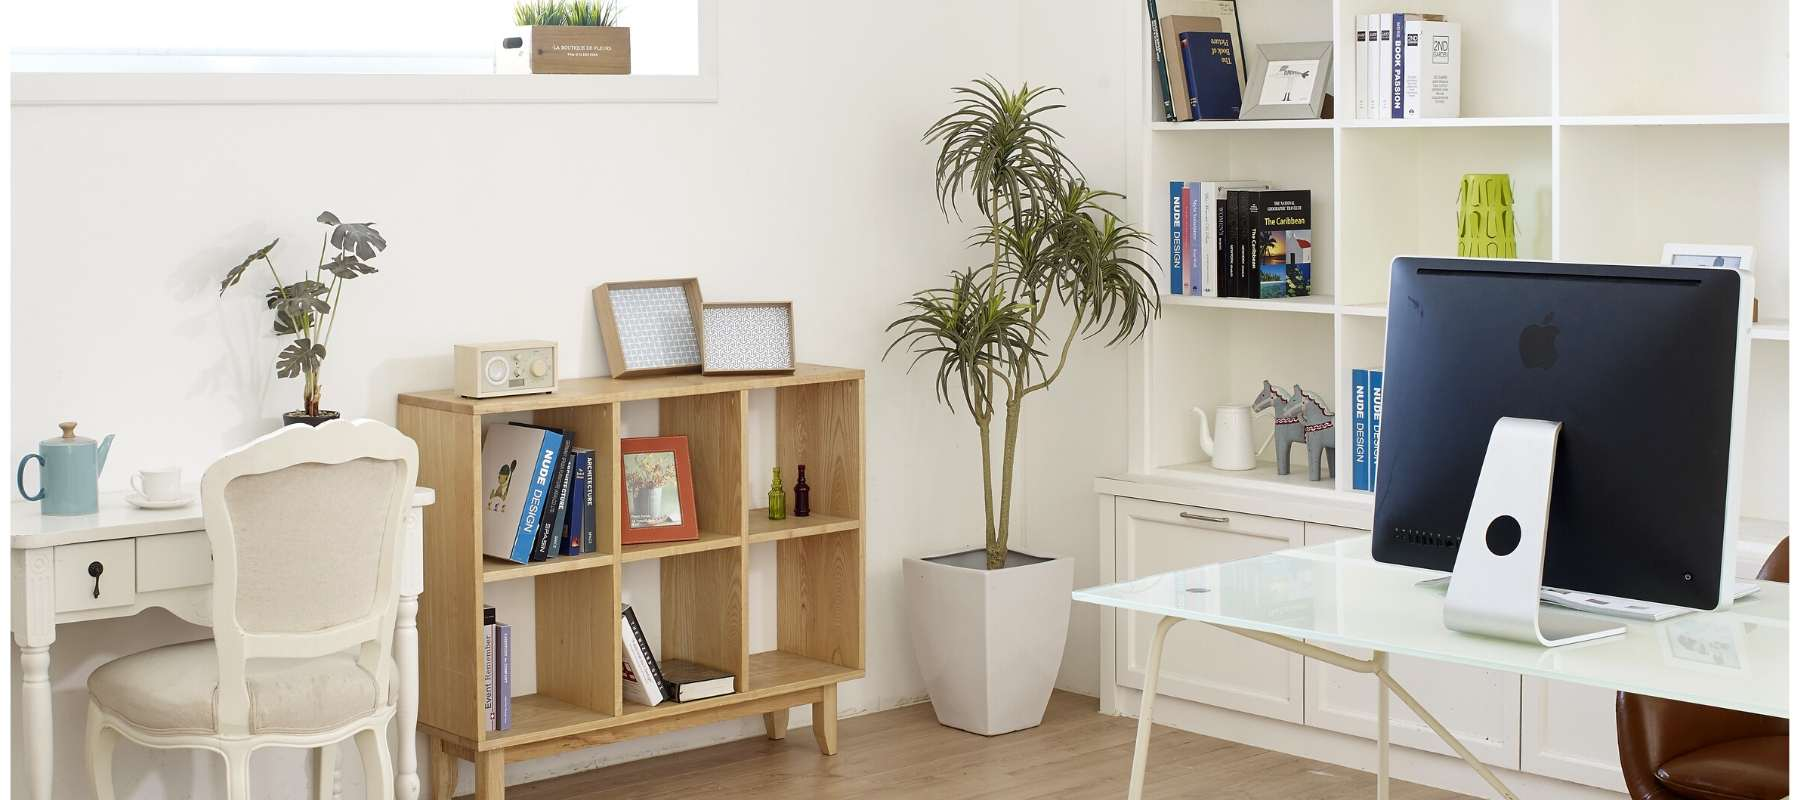 Home office with wooden storage unit